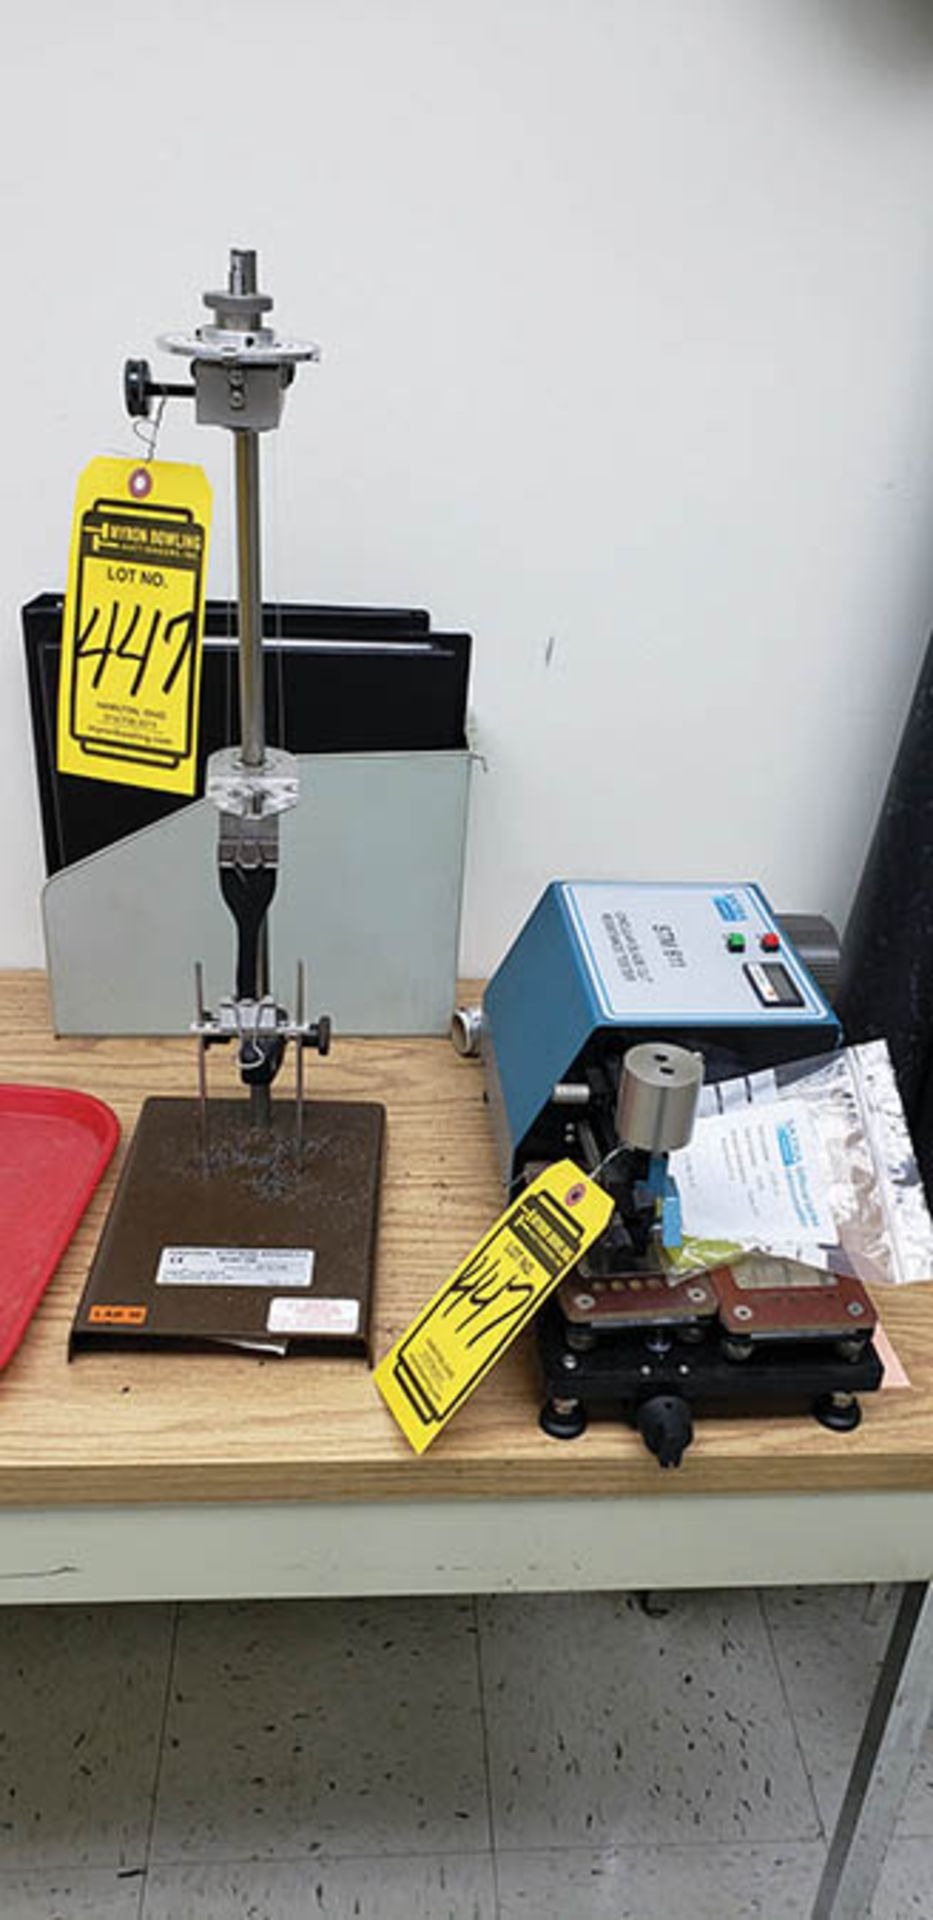 WWR MAGNETIC STIRRER, SATRA CIRCULAR BLADE CUT RESISTANCE TESTER, STM 611 W/ CART, TABLE & CONTENT - Image 3 of 3